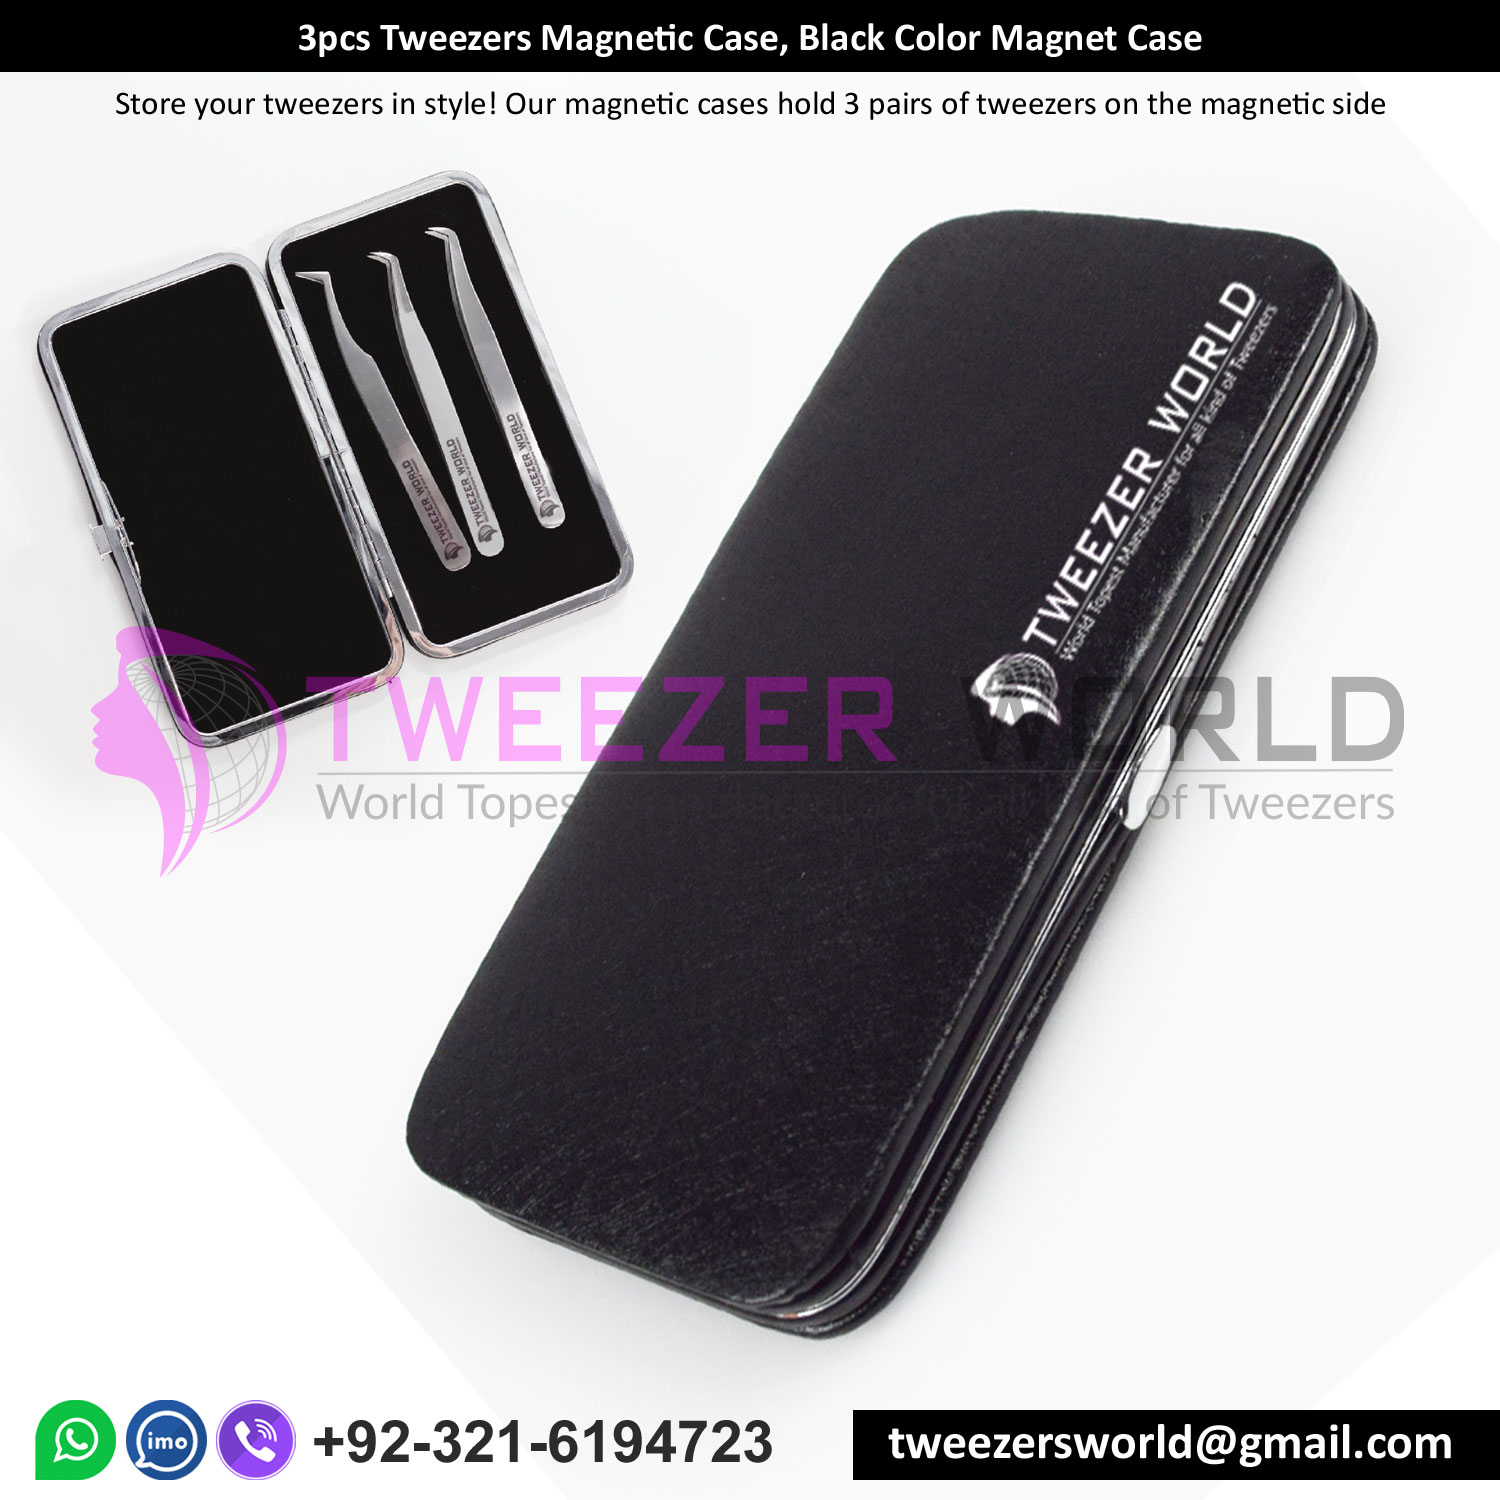 3pcs Tweezers Magnetic Case, Black Color Magnet Case